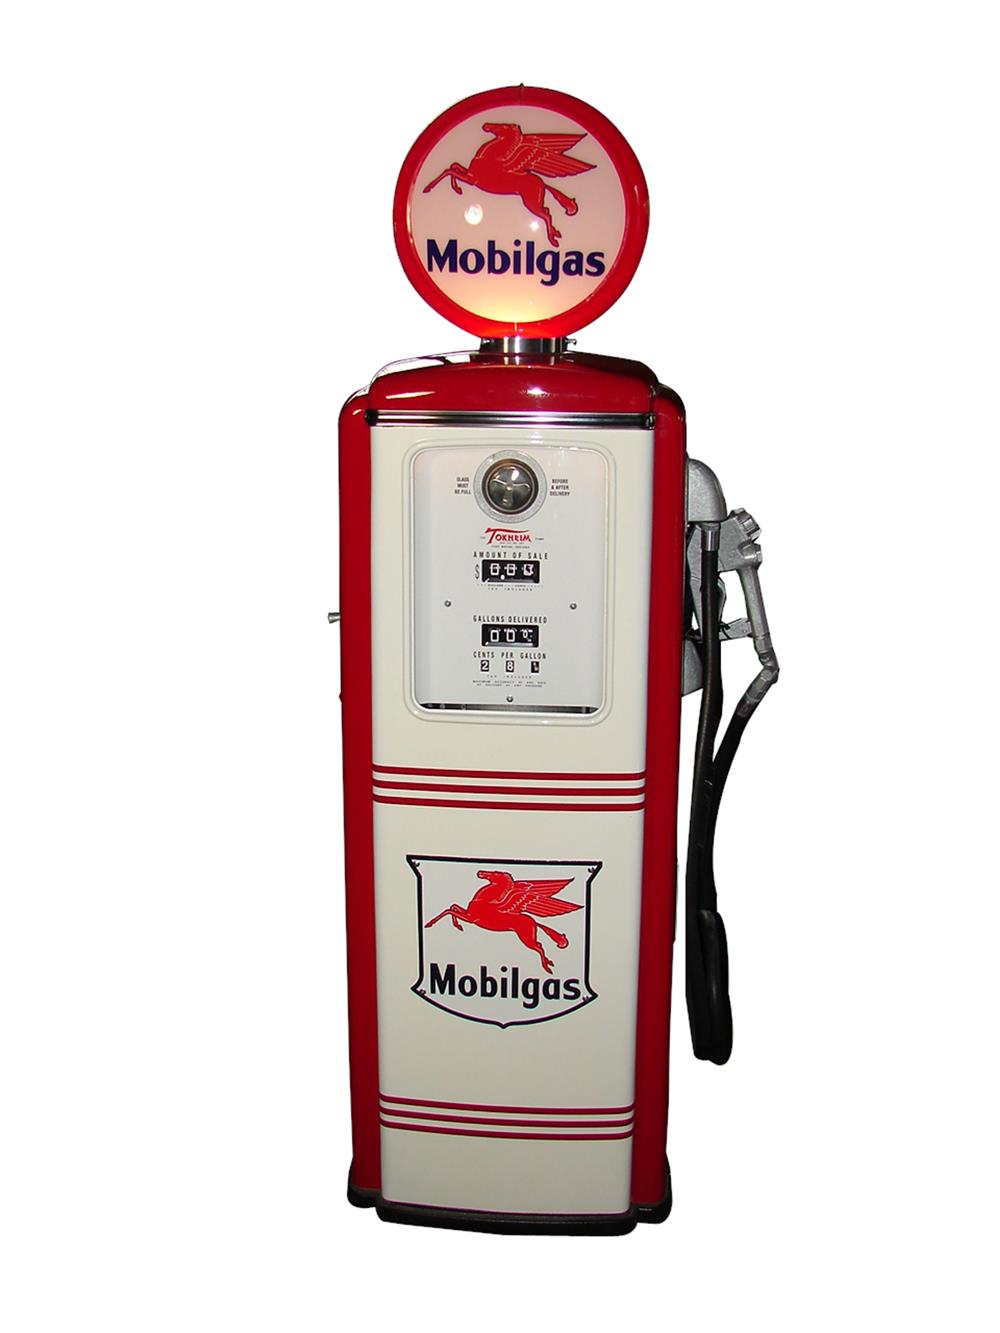 Fabulous 1950s Mobil Oil Tokheim model 300 restored service station gas pump. - Front 3/4 - 187873